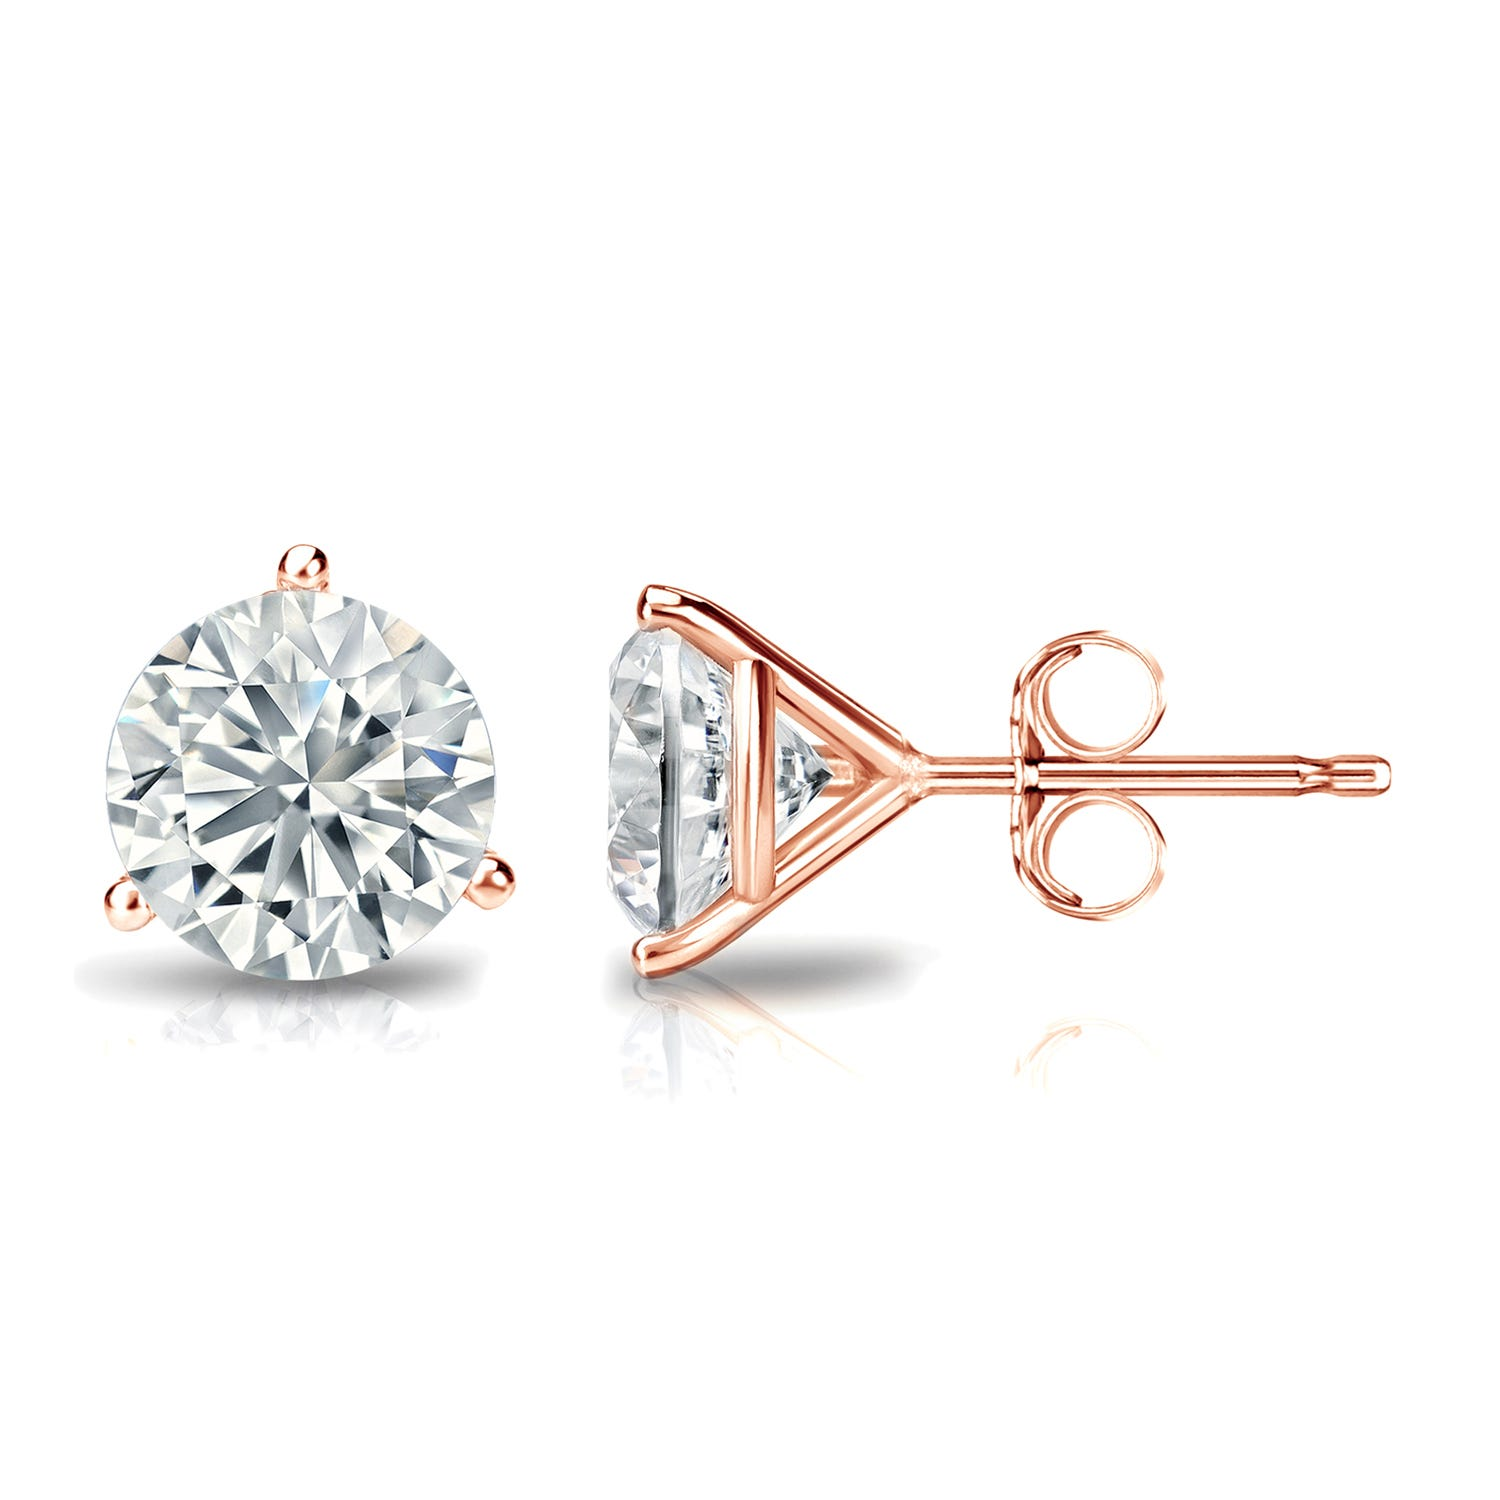 1-1/2 CTTW Round Diamond Solitaire Stud Earrings IJ SI2 in 14K Rose Gold IGI Certified 3-Prong Setting